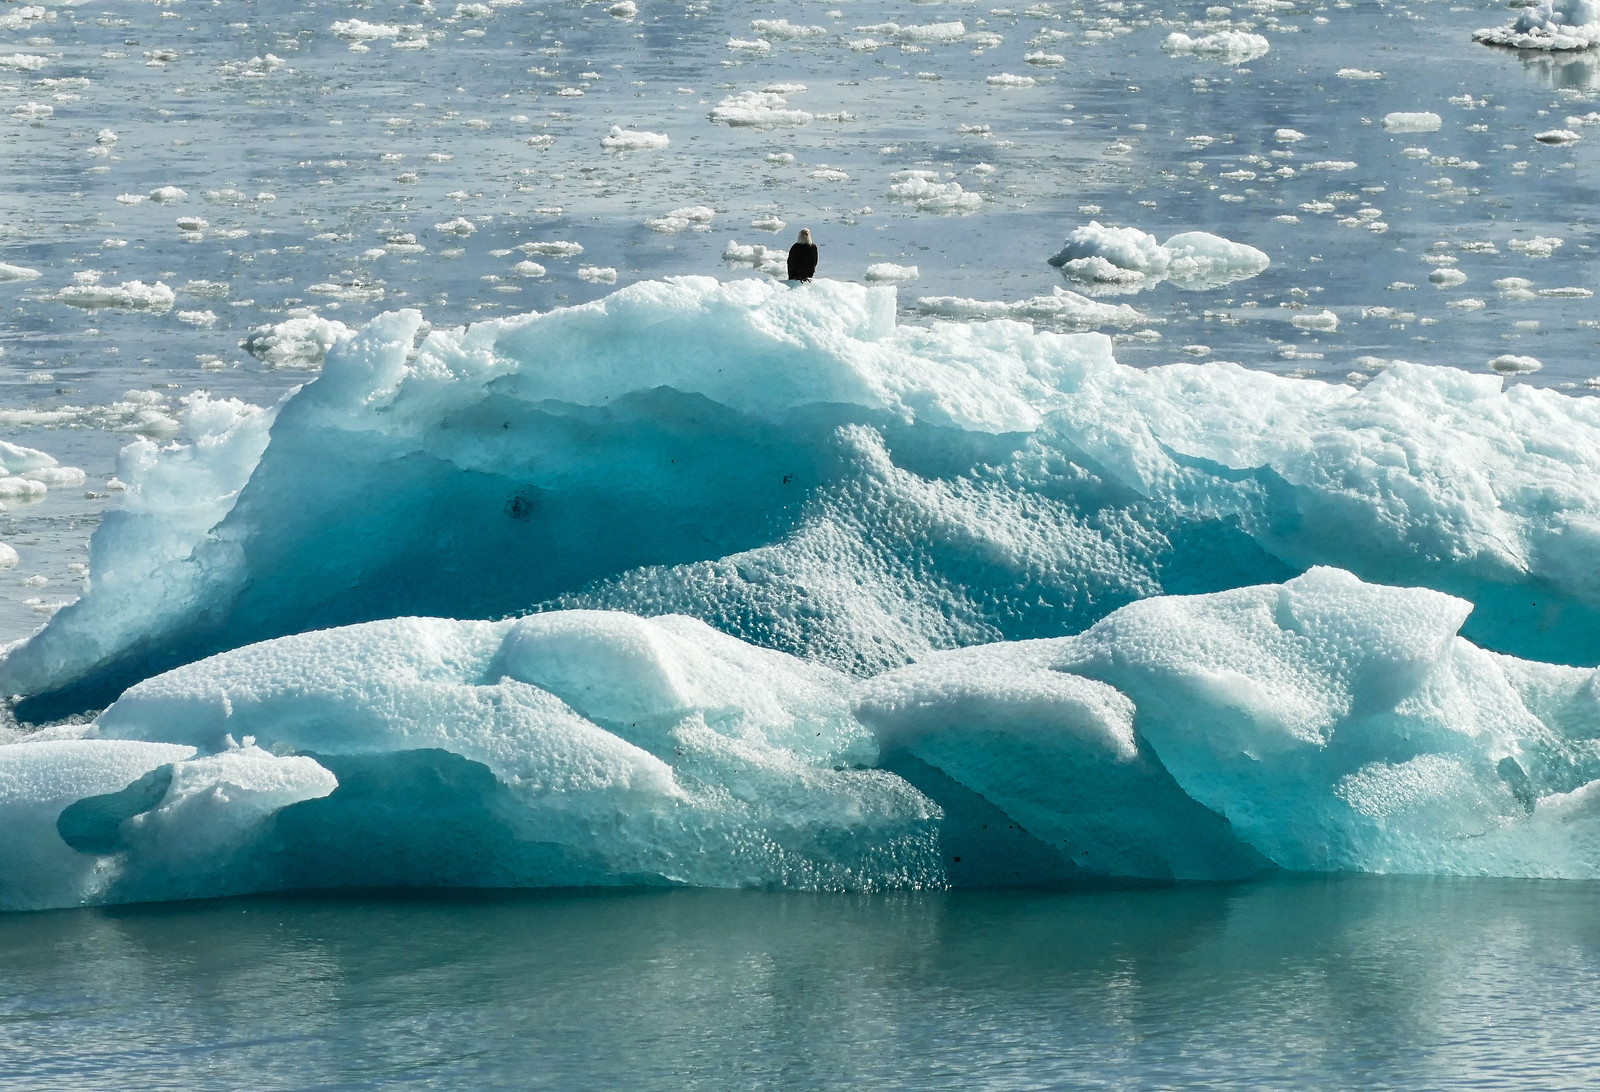 Bald eagle perched on an in ice berg in Alaska.